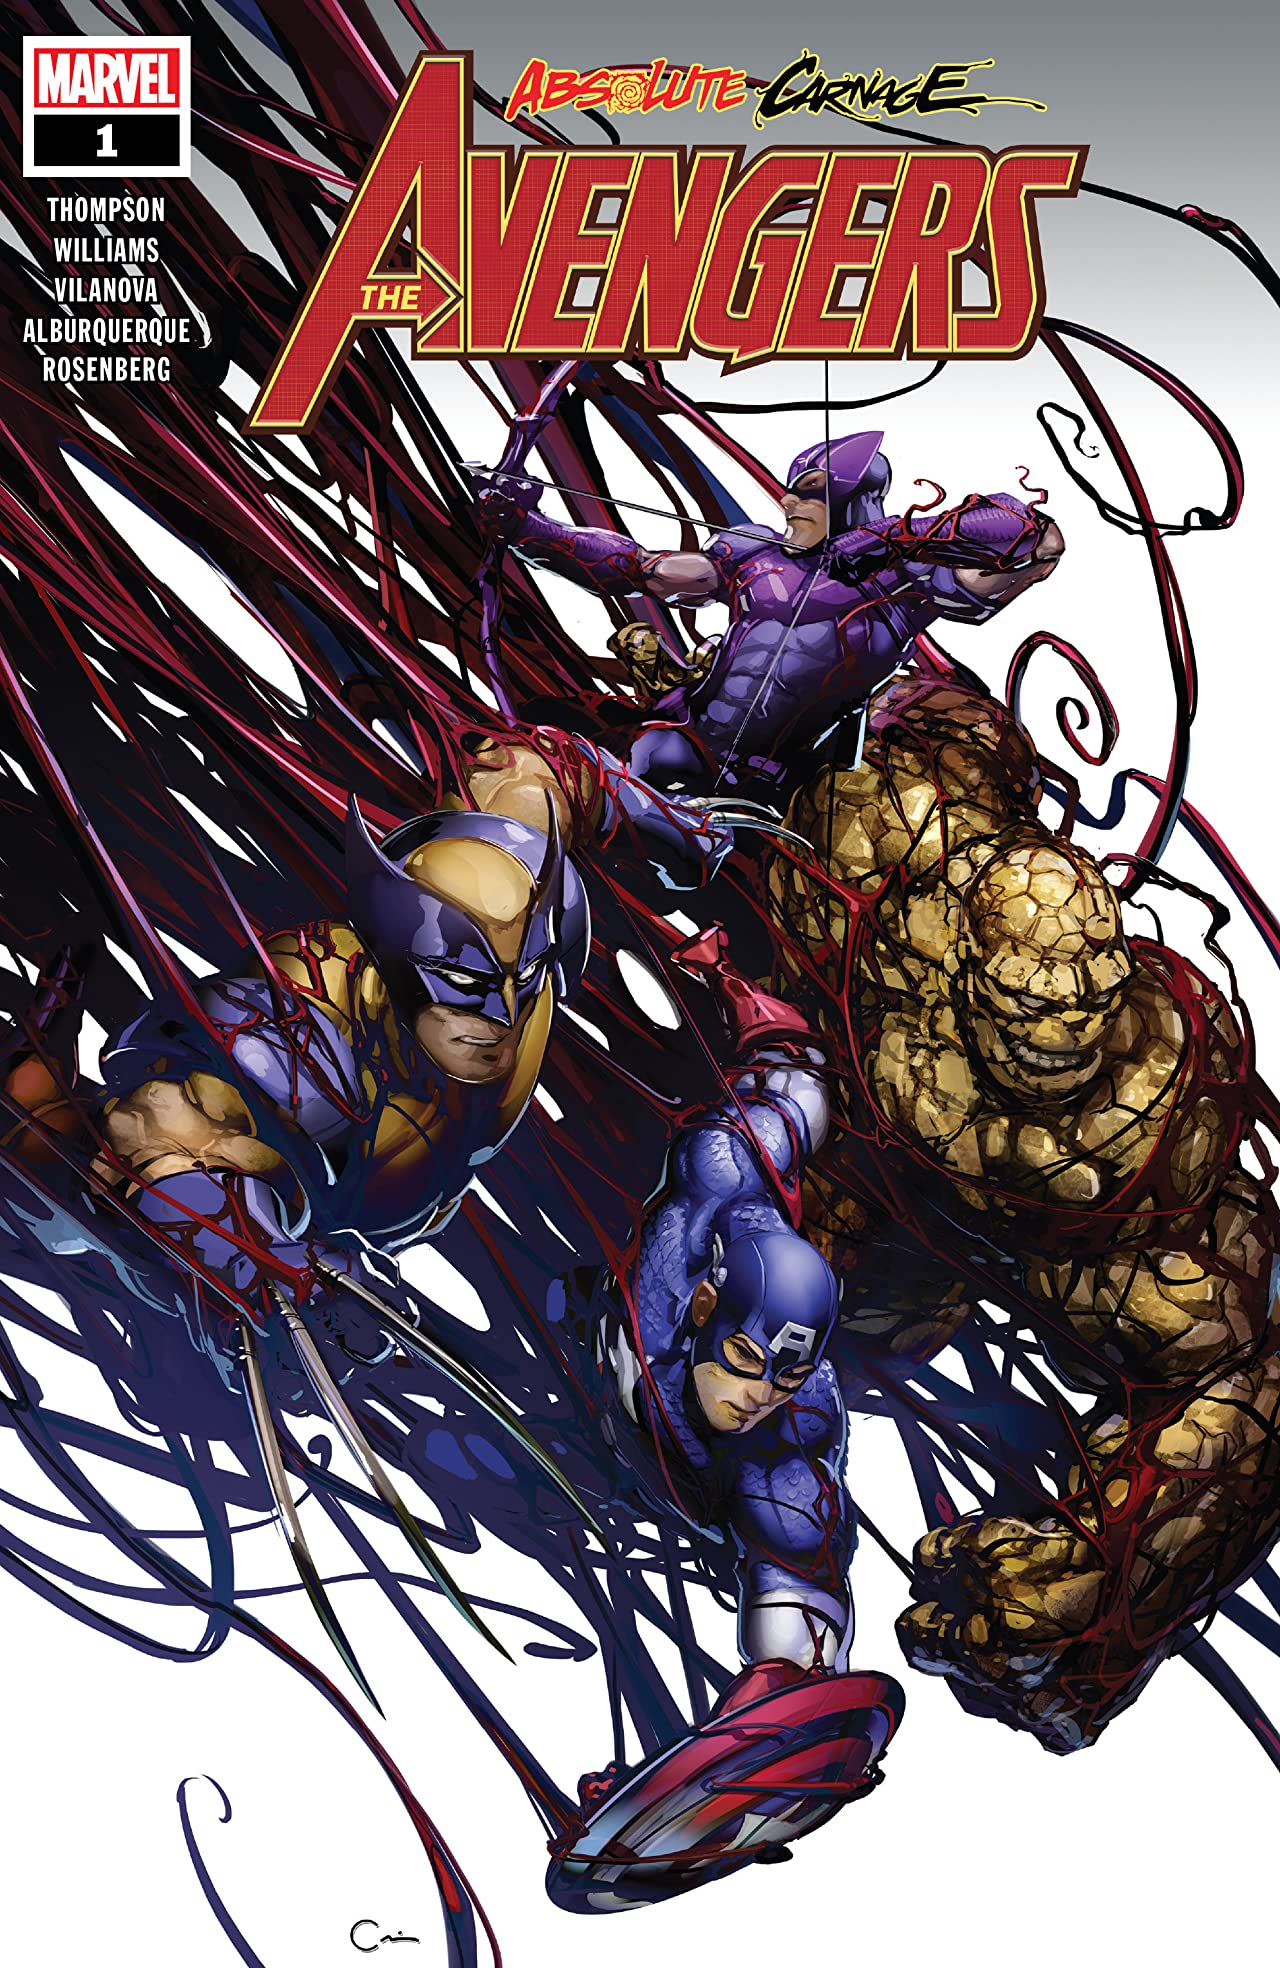 Absolute Carnage: Avengers (2019) No.1